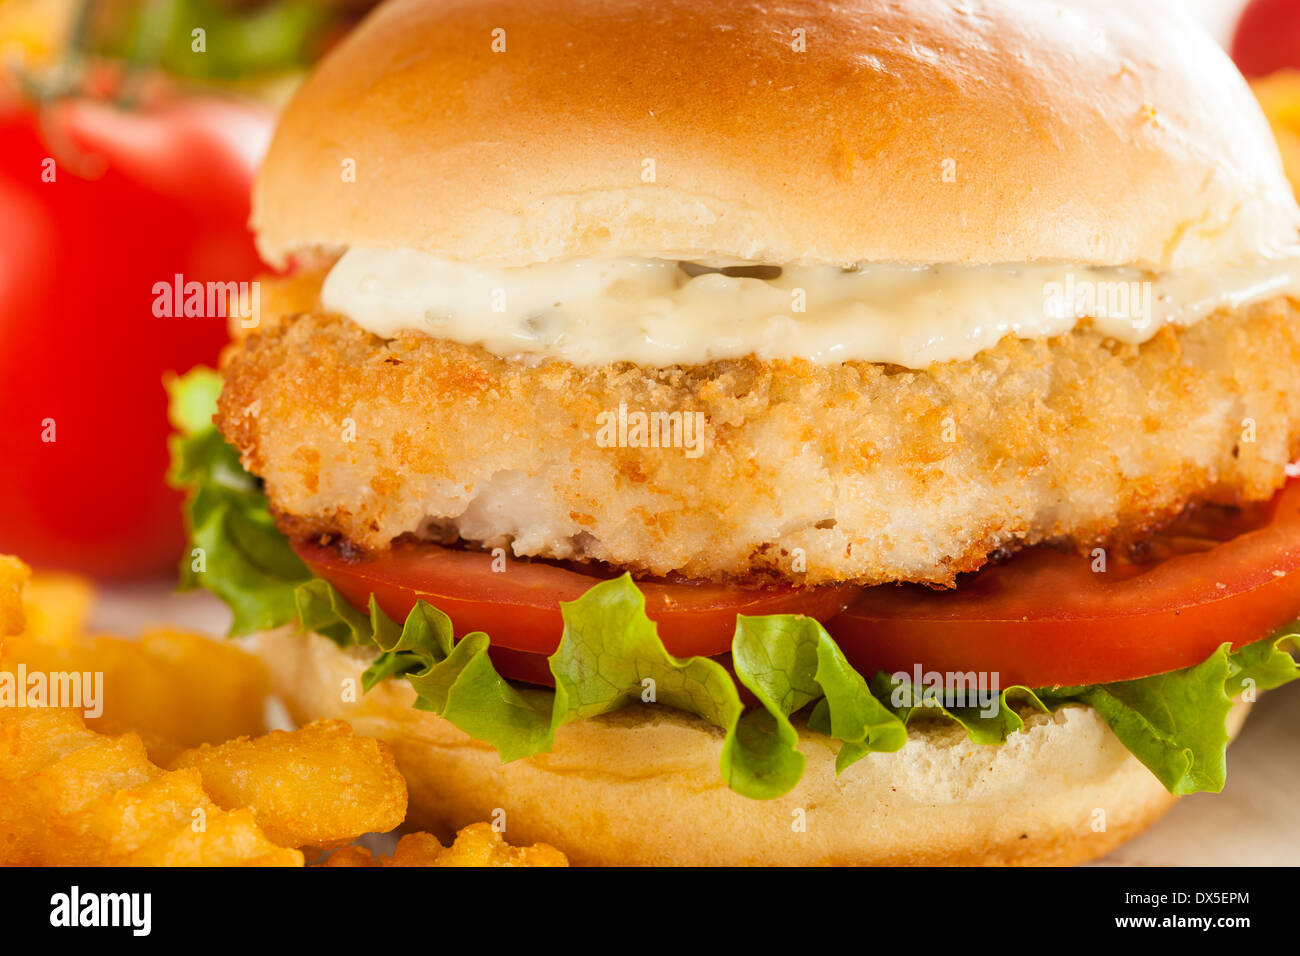 Breaded Fish Sandwich with Tartar Sauce and Fries Stock Photo